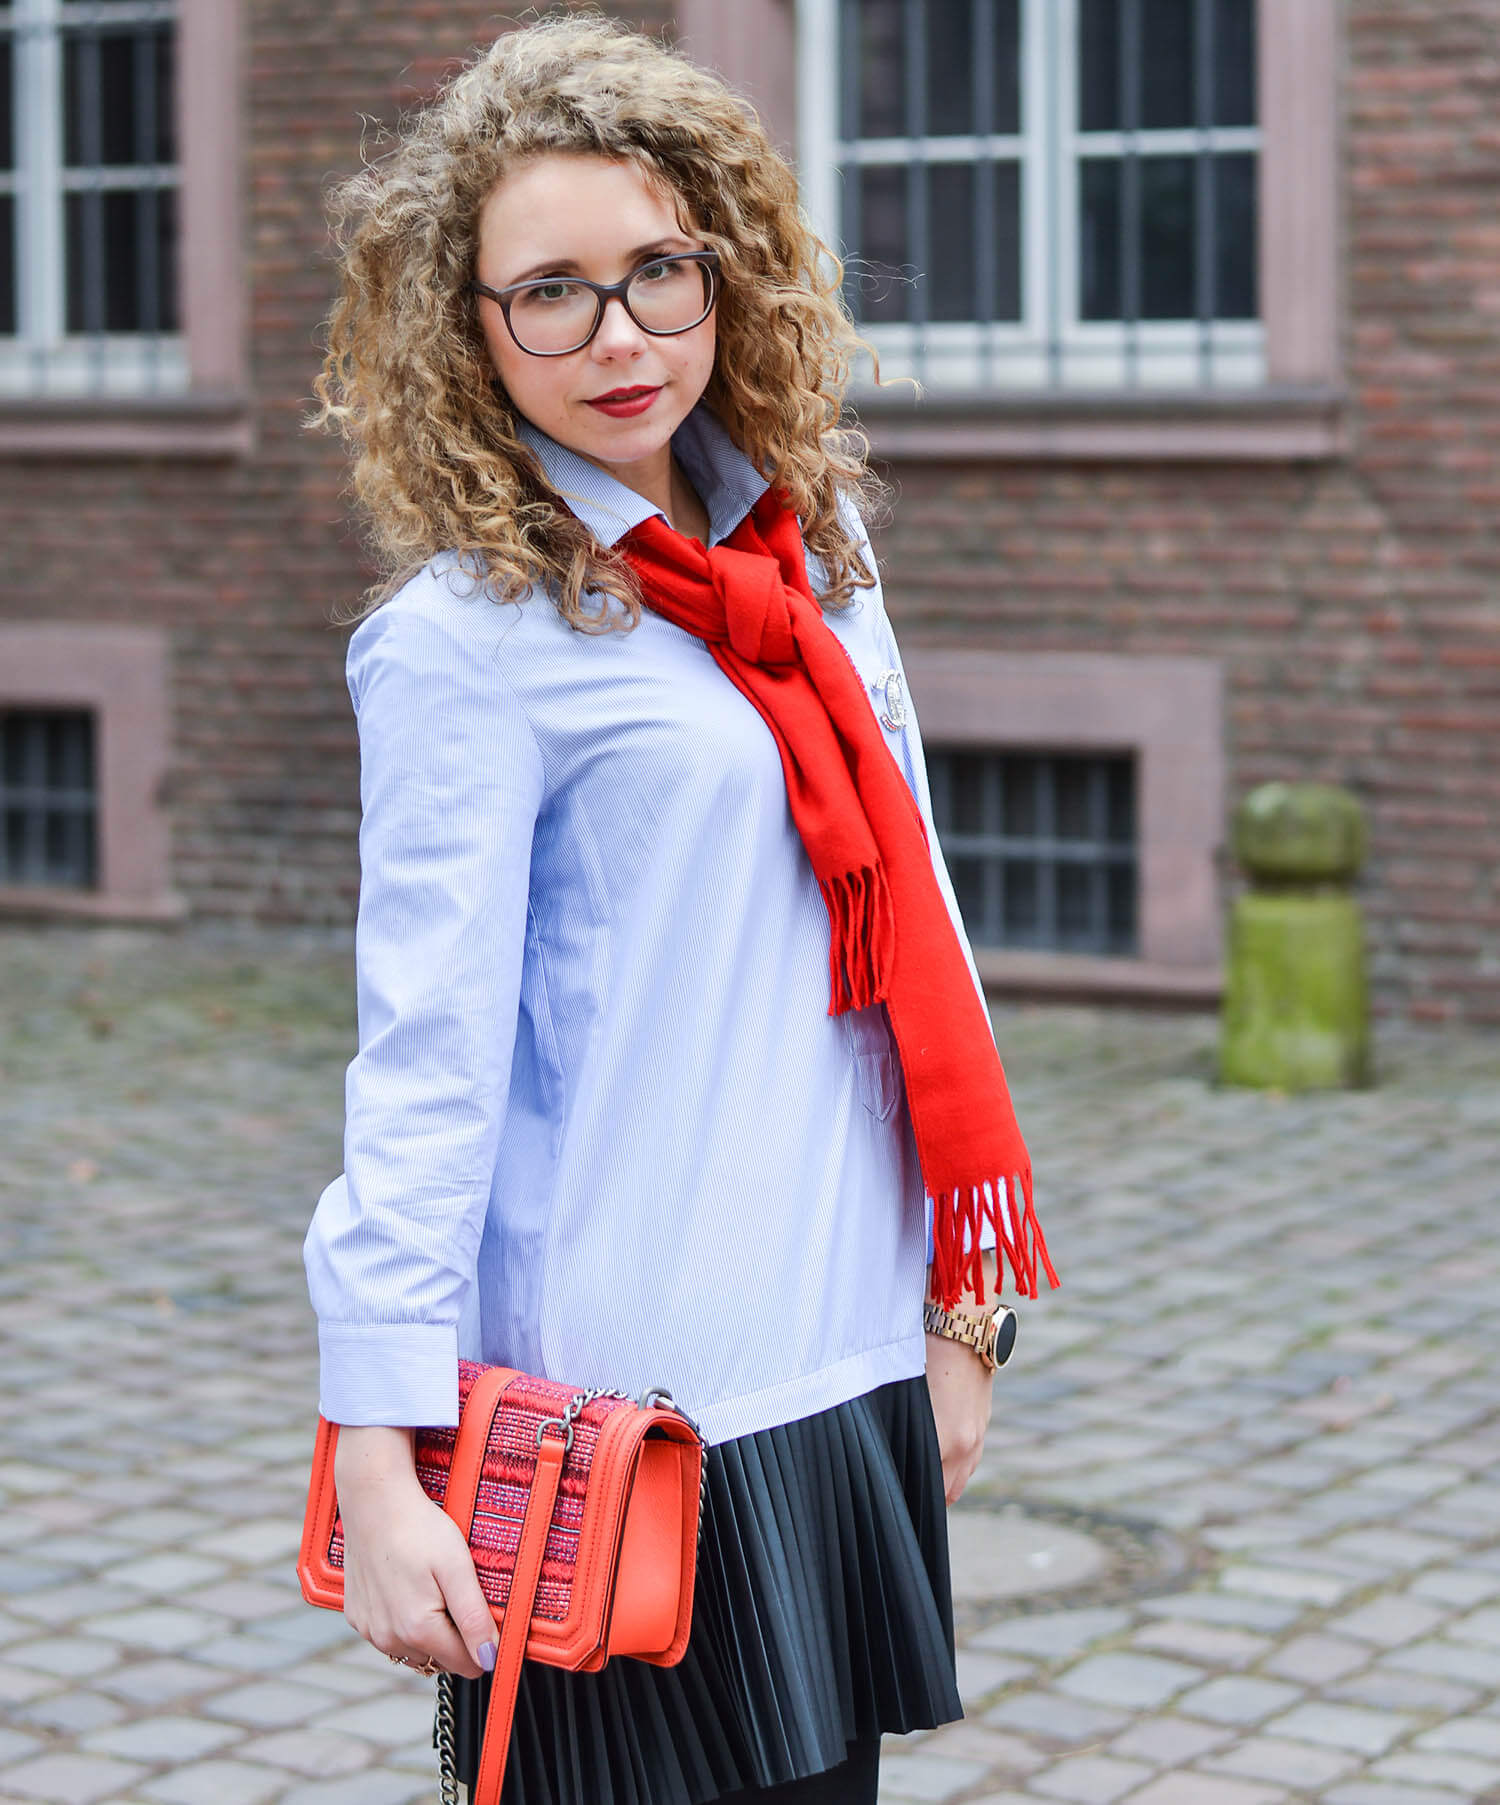 Outfit-College-Look-a-la-Gossip-Girl-with-Pleats-Blouse-dress-and-Scarf-kationette-fashionblogger-nrw-streetstyle